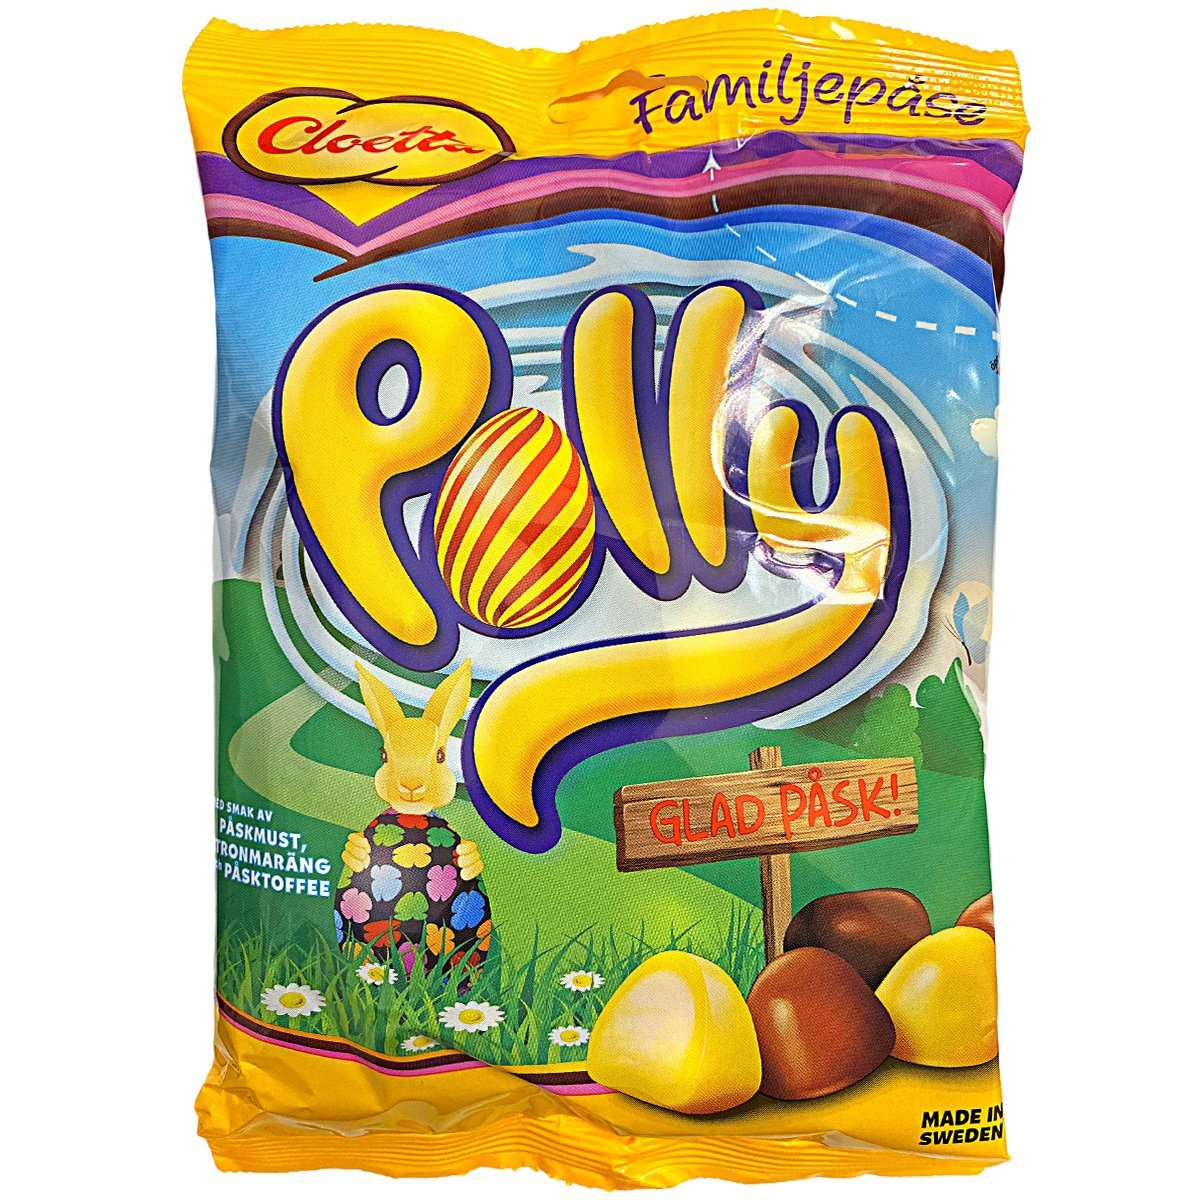 CLOETTA Polly Pask - Frohe Ostern, große Tüte - Familienpackung (300g) 1